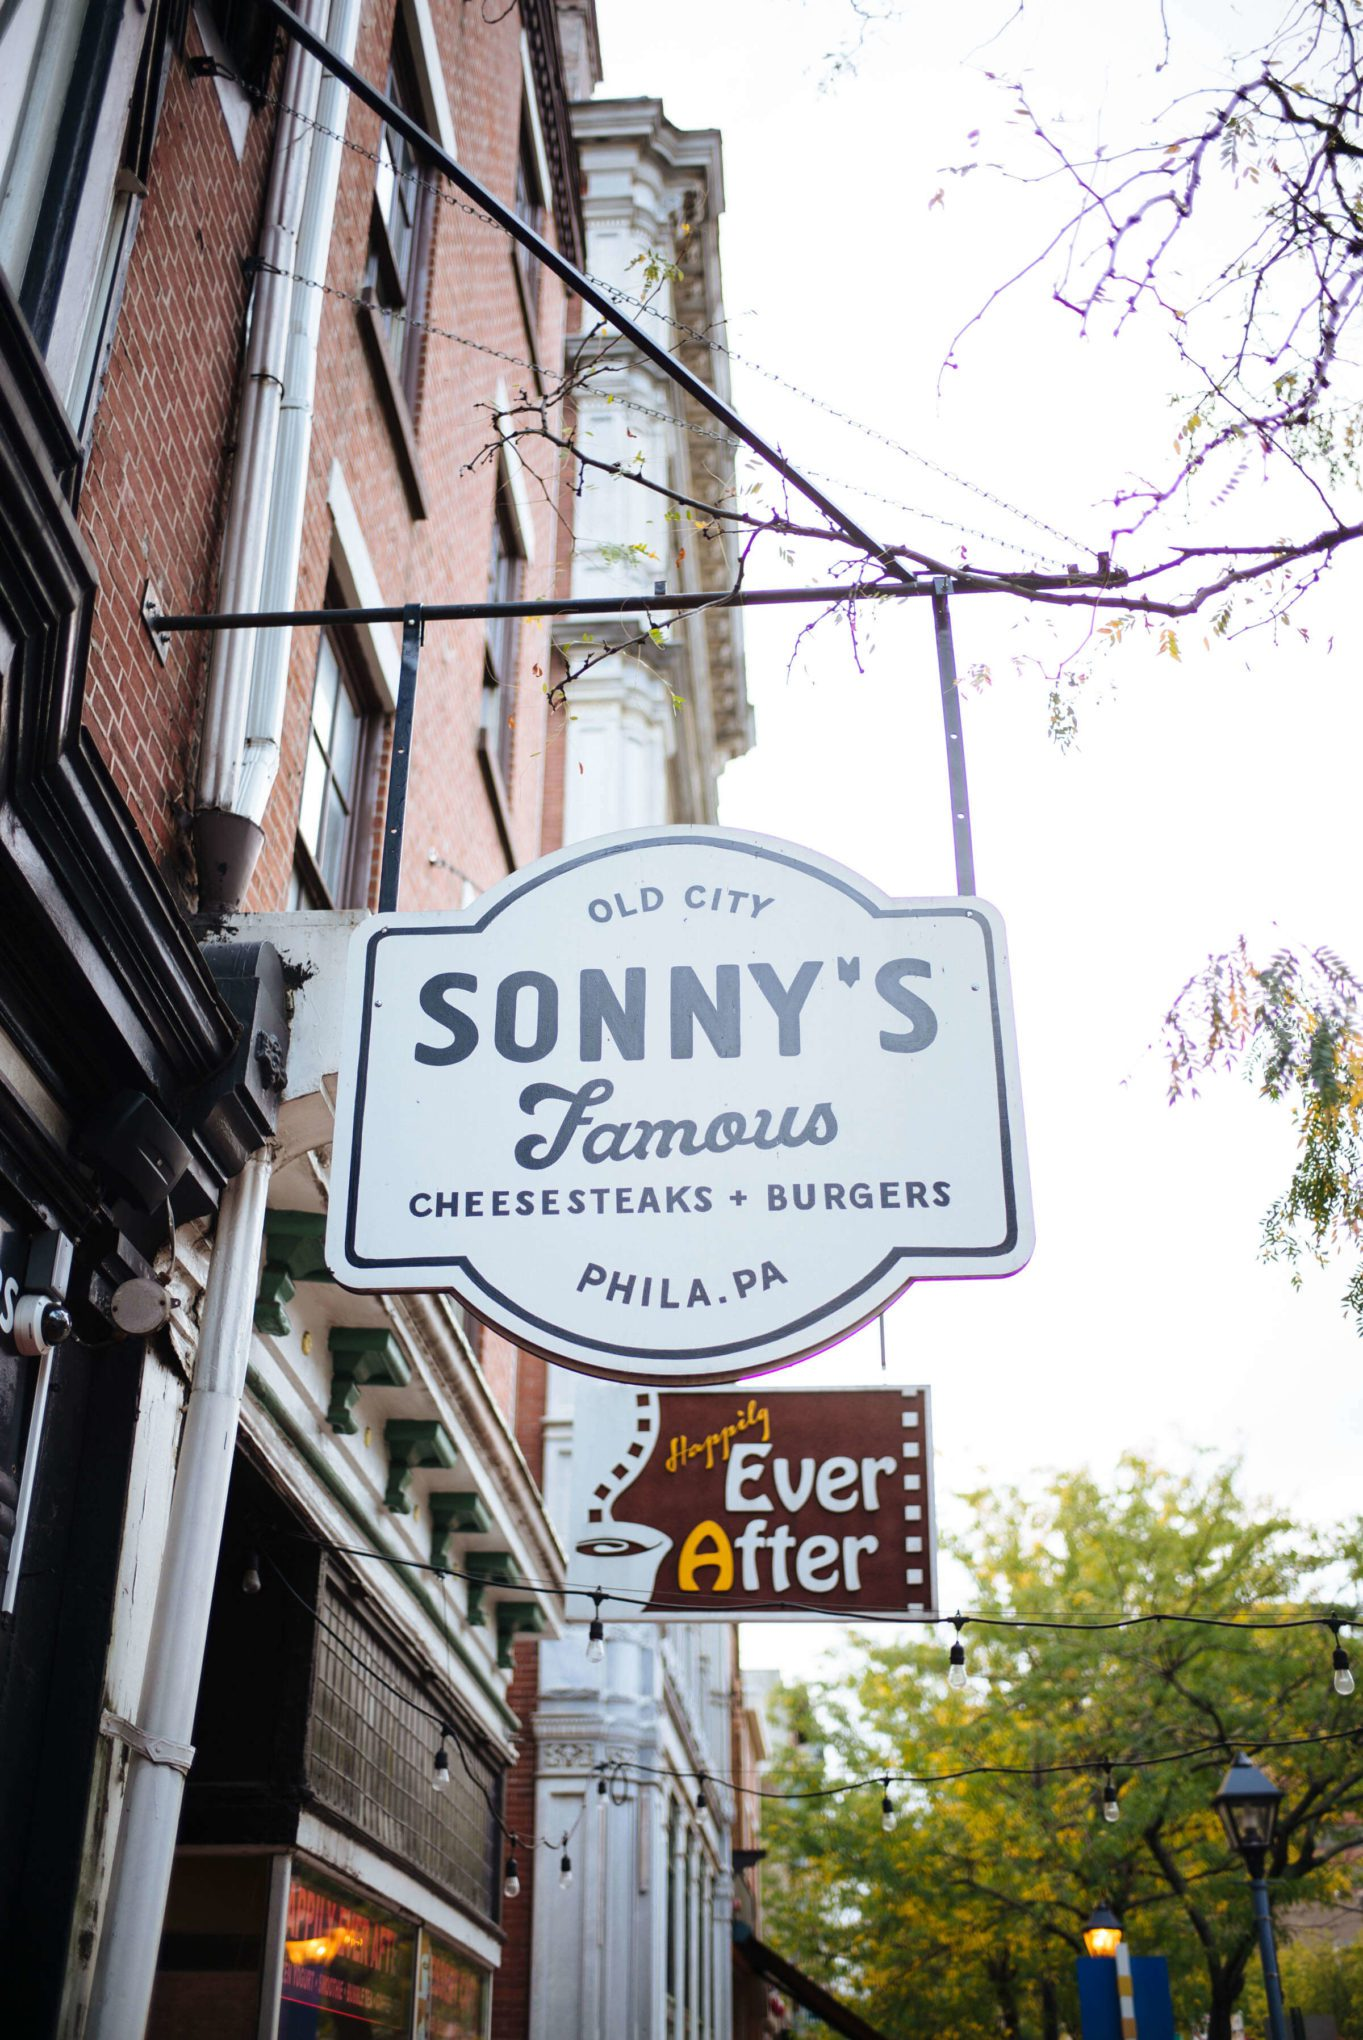 Visit Philadelphia for some of the best food and historical sites. Go to Sonny's for one of the best Philly Cheese Steak Sandwiches in Philadelphia. #thetastesf #travel #philadelphia #history